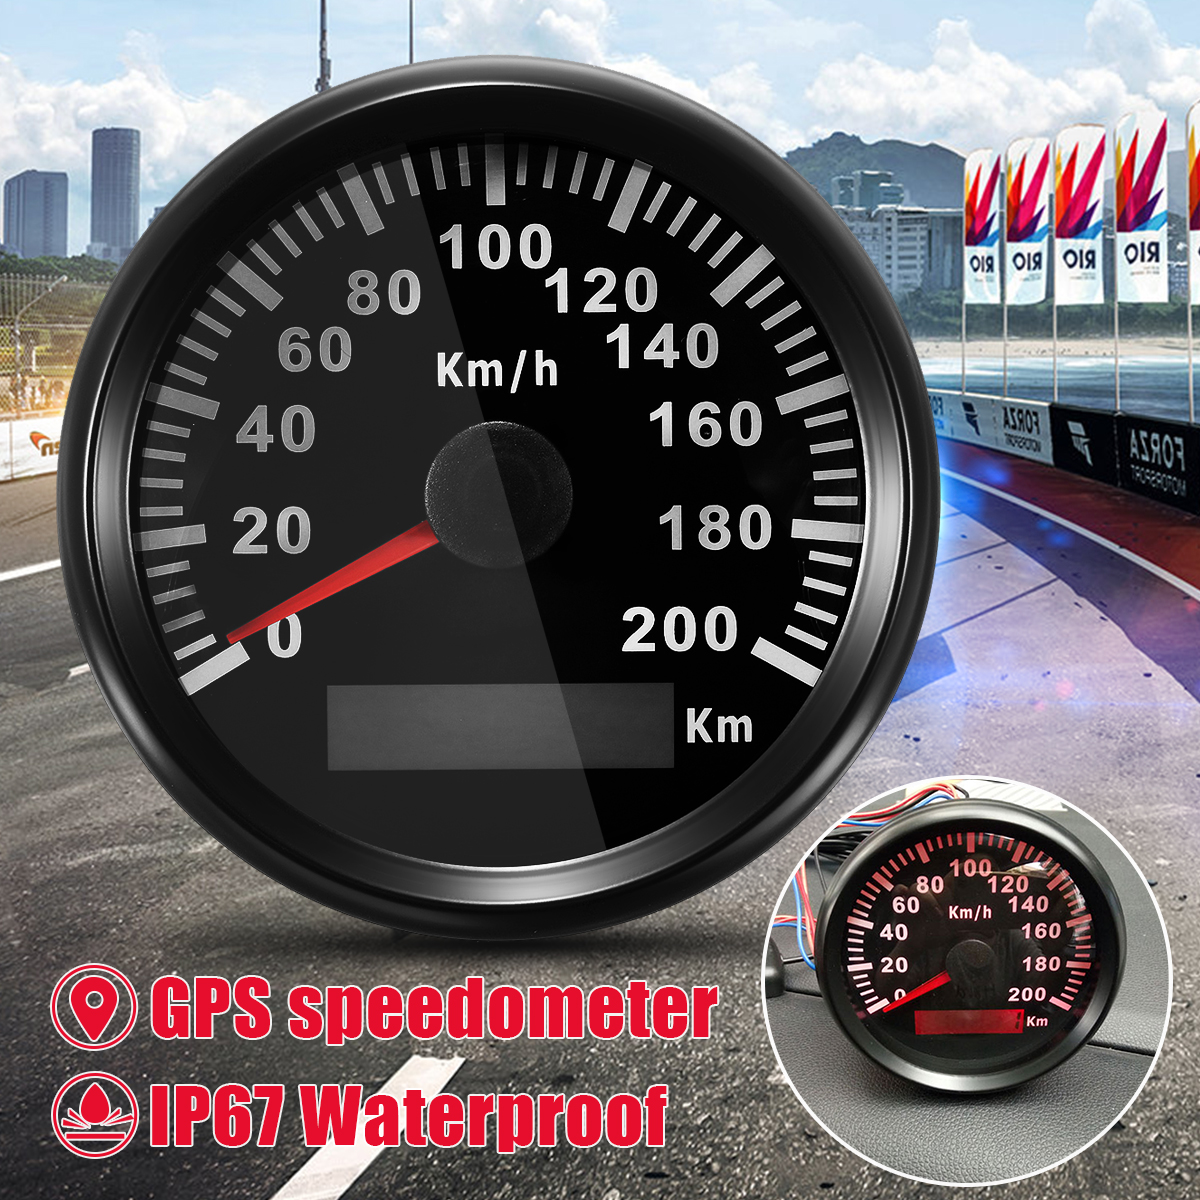 85mm GPS Speedometer 200 KM/H Stainless GPS Speedometer Waterproof Digital Gauges Bike Car Truck Motor Auto With Backlight 100% brand new gps speedometer 60knots for auto boat with gps antenna white color